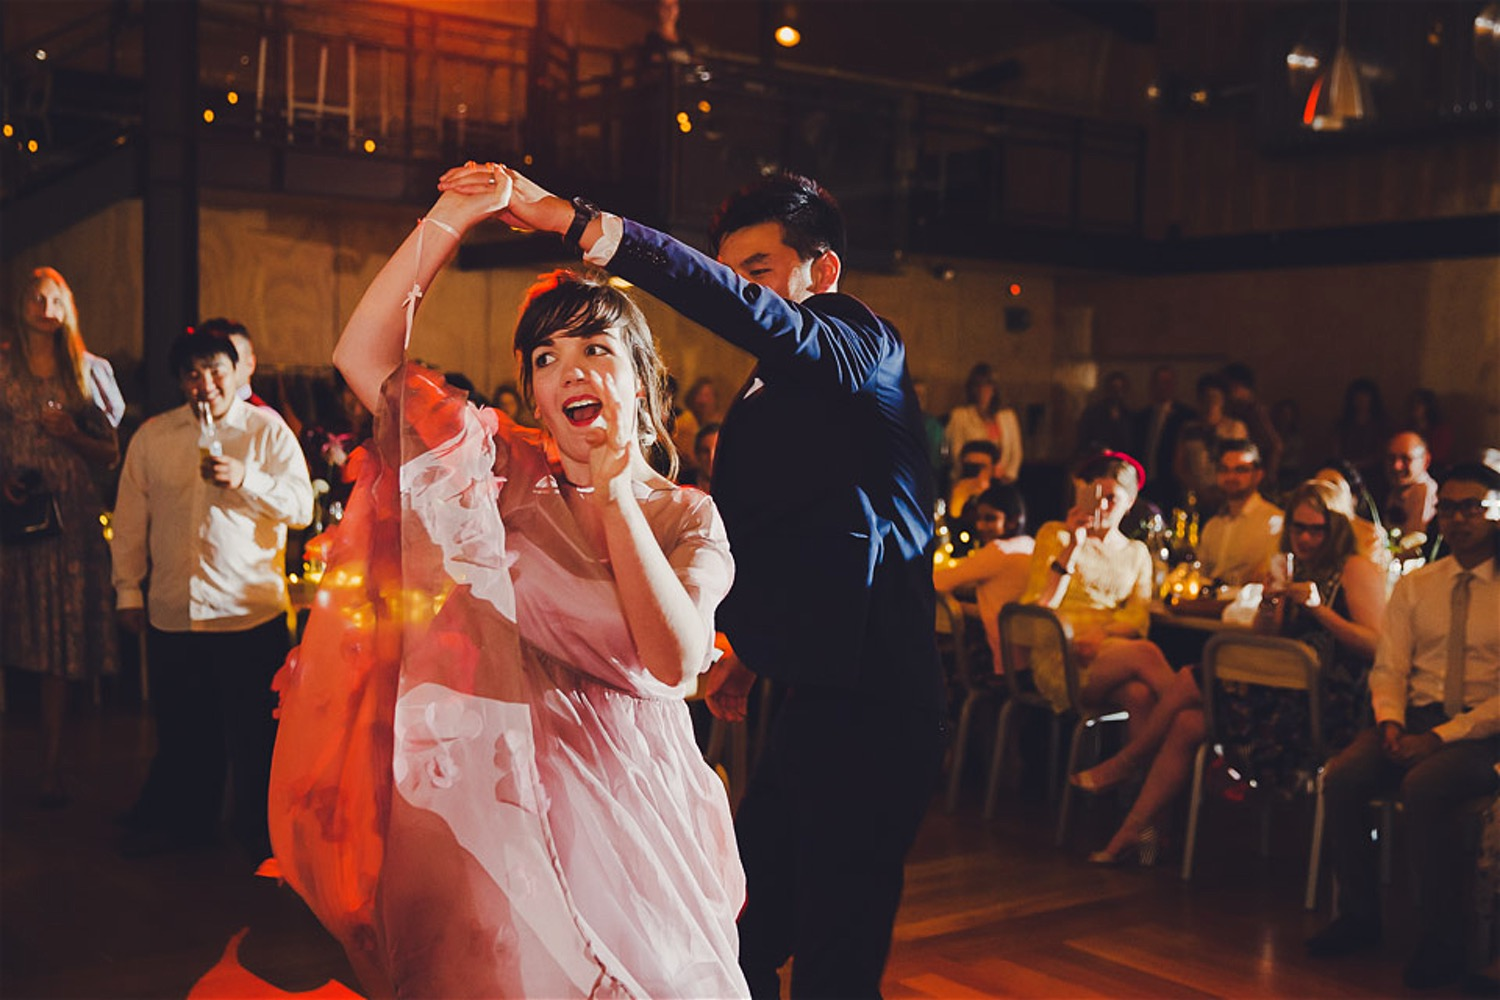 first, dance, song, wedding, band, weddings, bride, brides, planning, bands, djs, entertainment, reception, playlist, inspiration, spotify, theme, style, dancing,